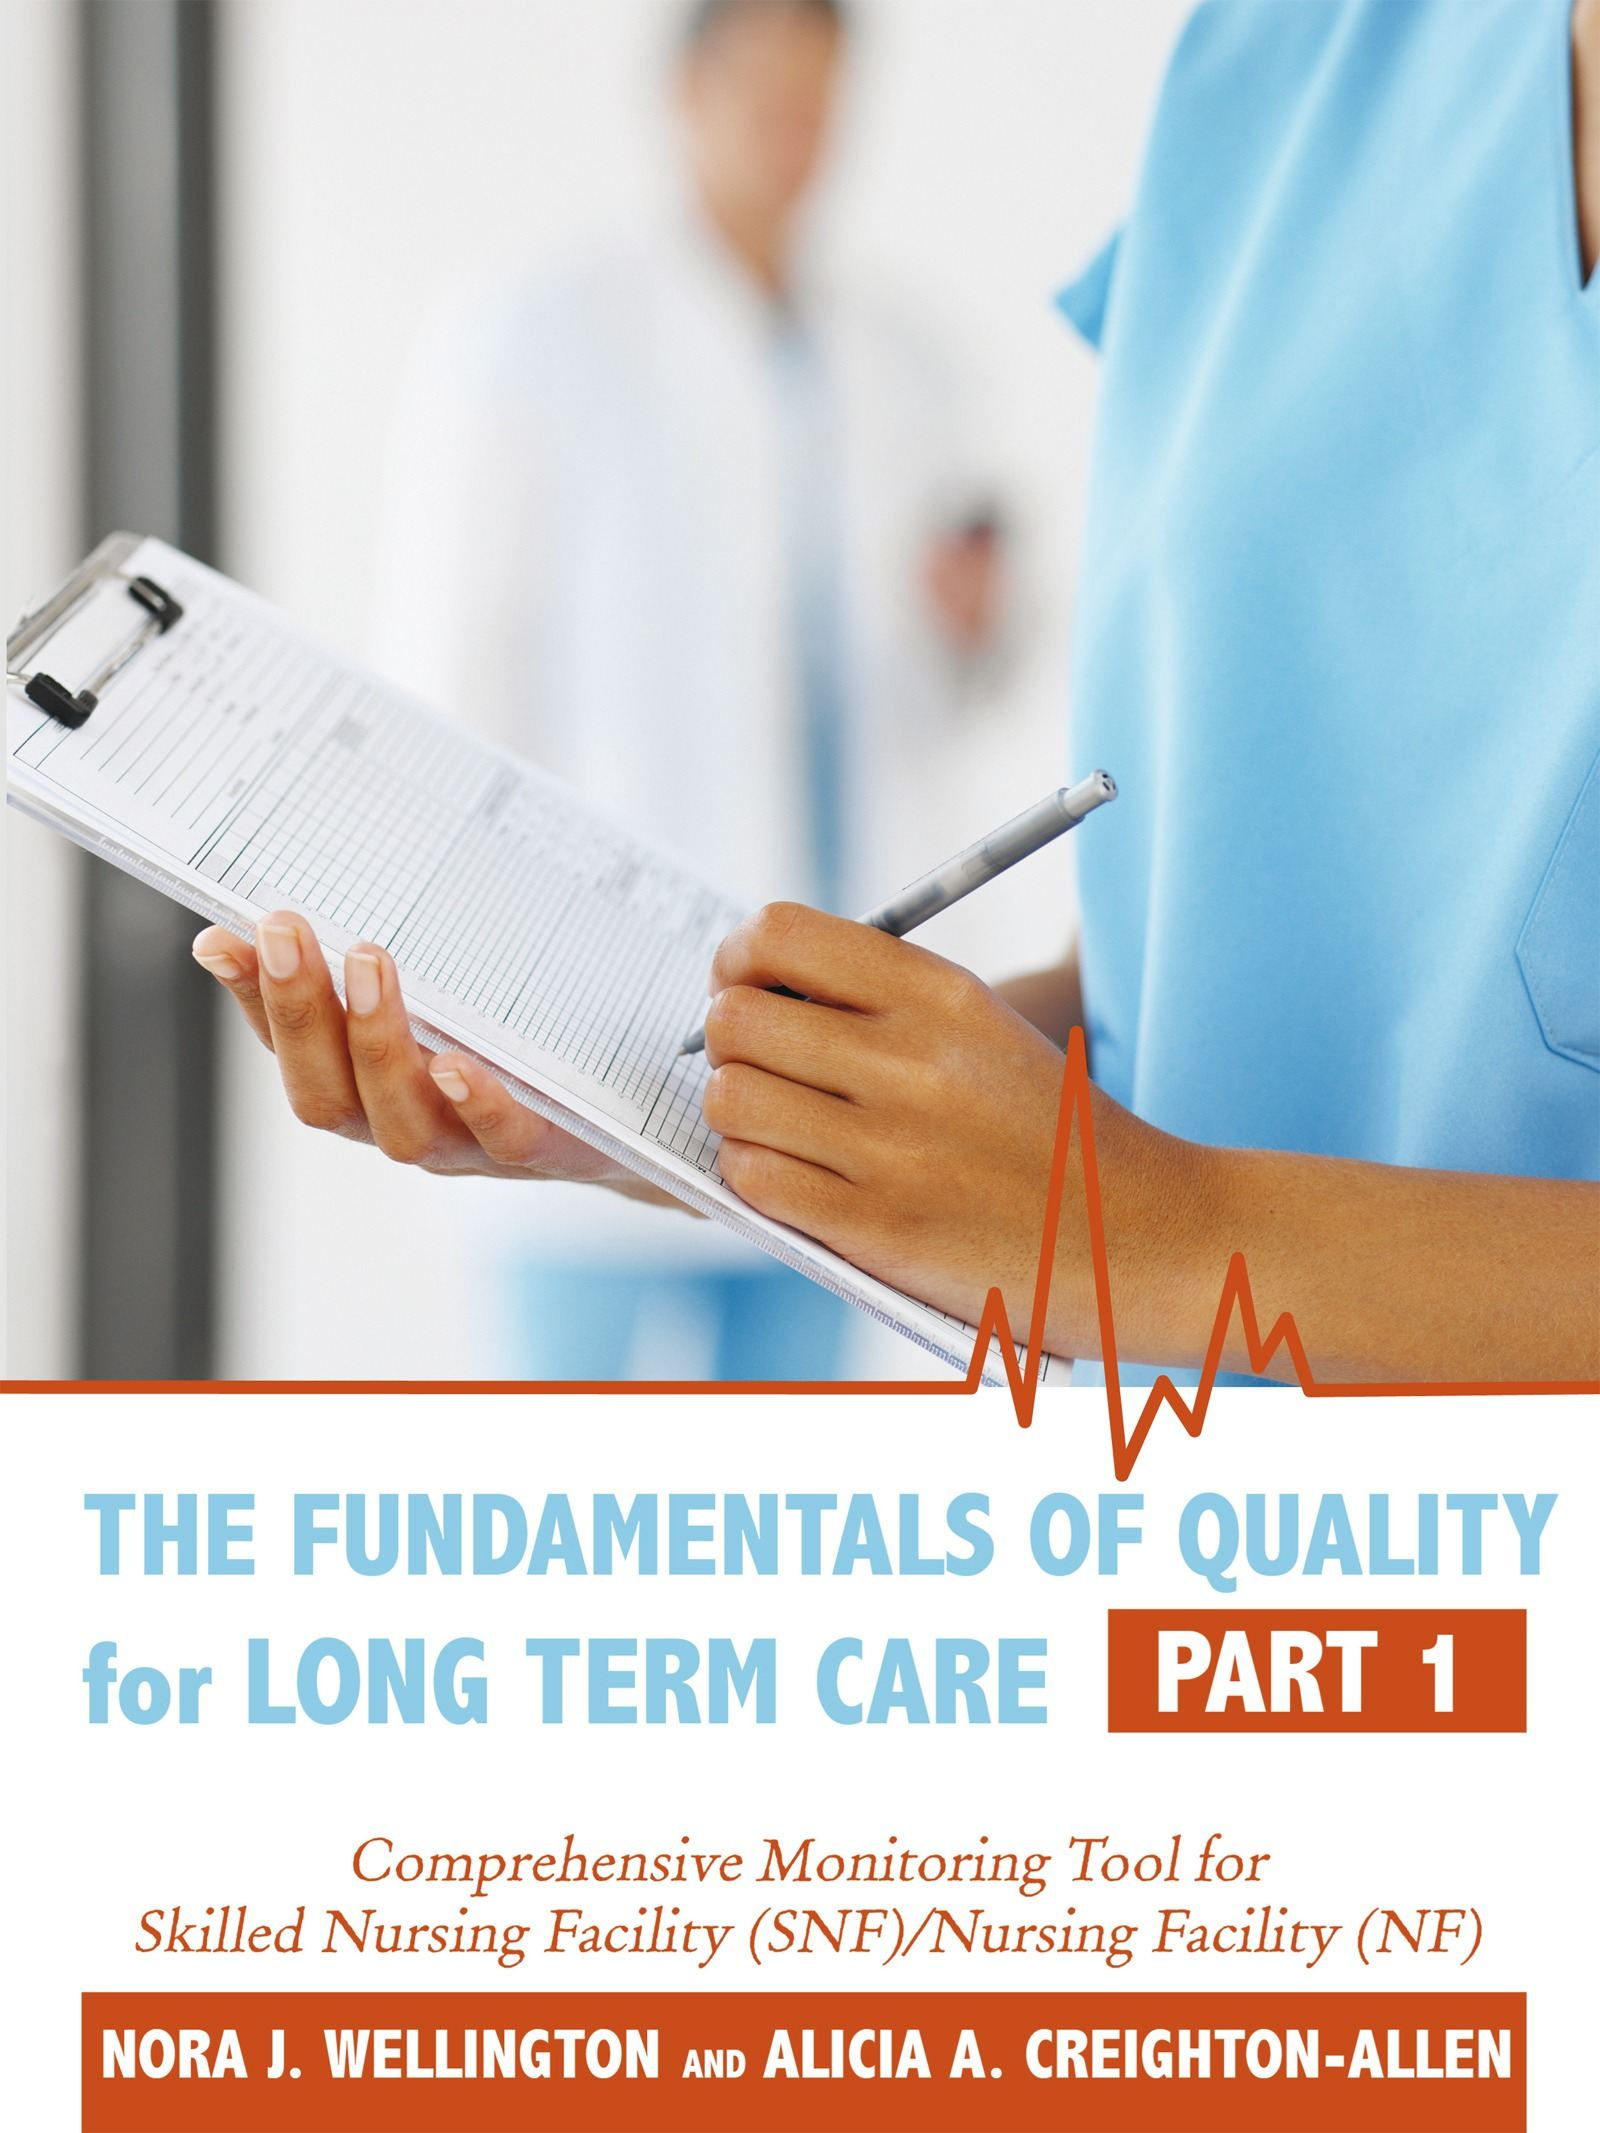 The Fundamentals of Quality for Long Term Care